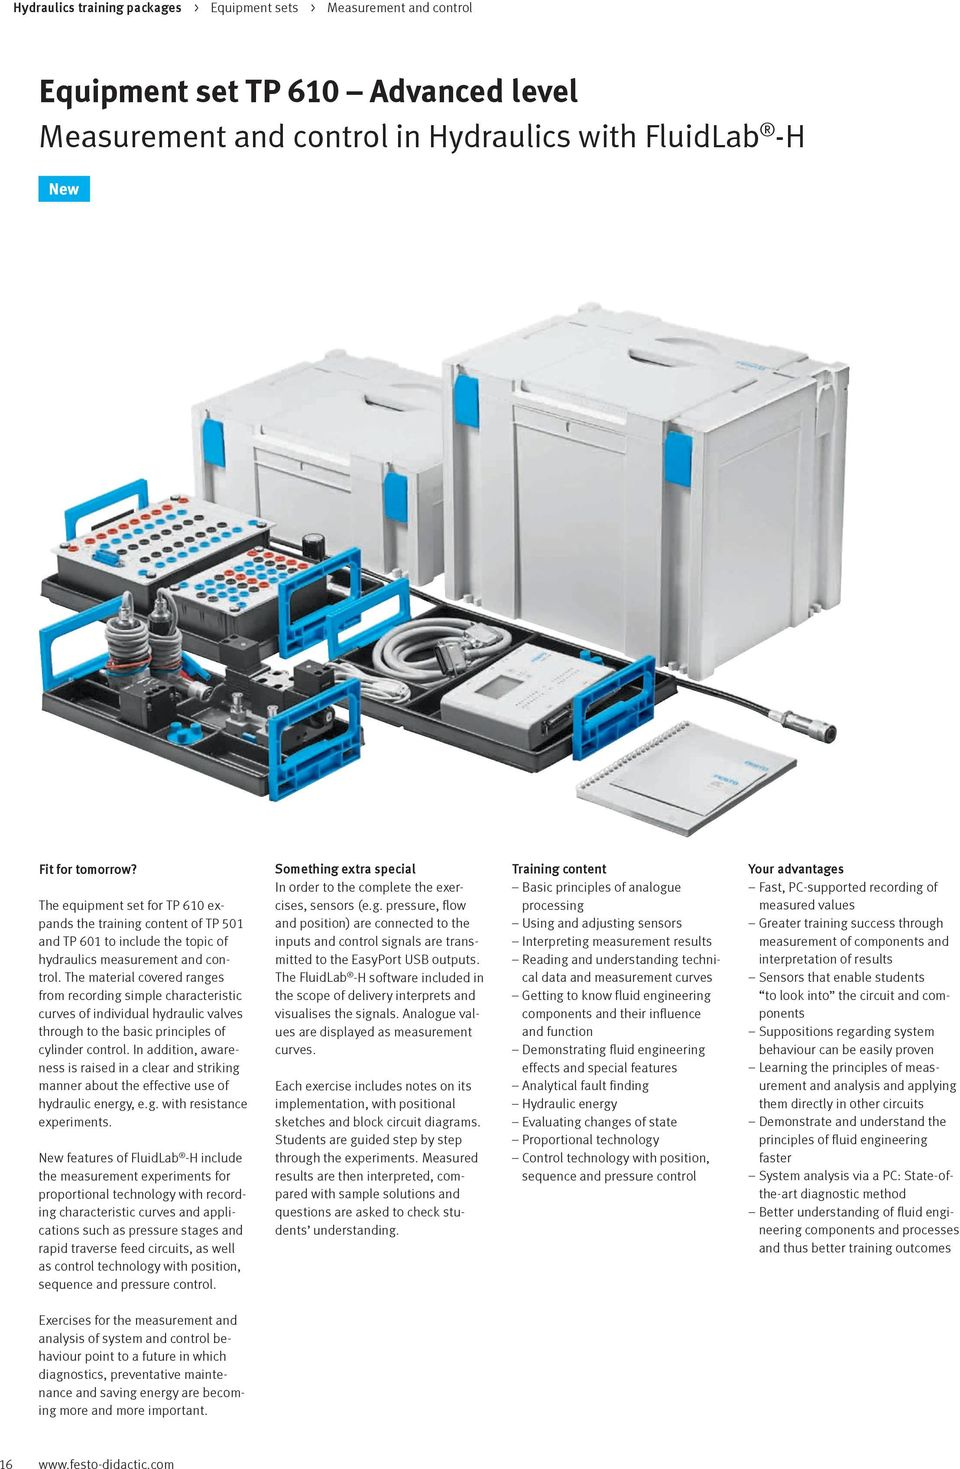 Hydraulics Vocational And Further Training With Festo Didactic Pdf Ac Circuit Experiment Box Electrical Equipment Basic The Material Covered Ranges From Recording Simple Characteristic Curves Of Individual Hydraulic Valves Through To